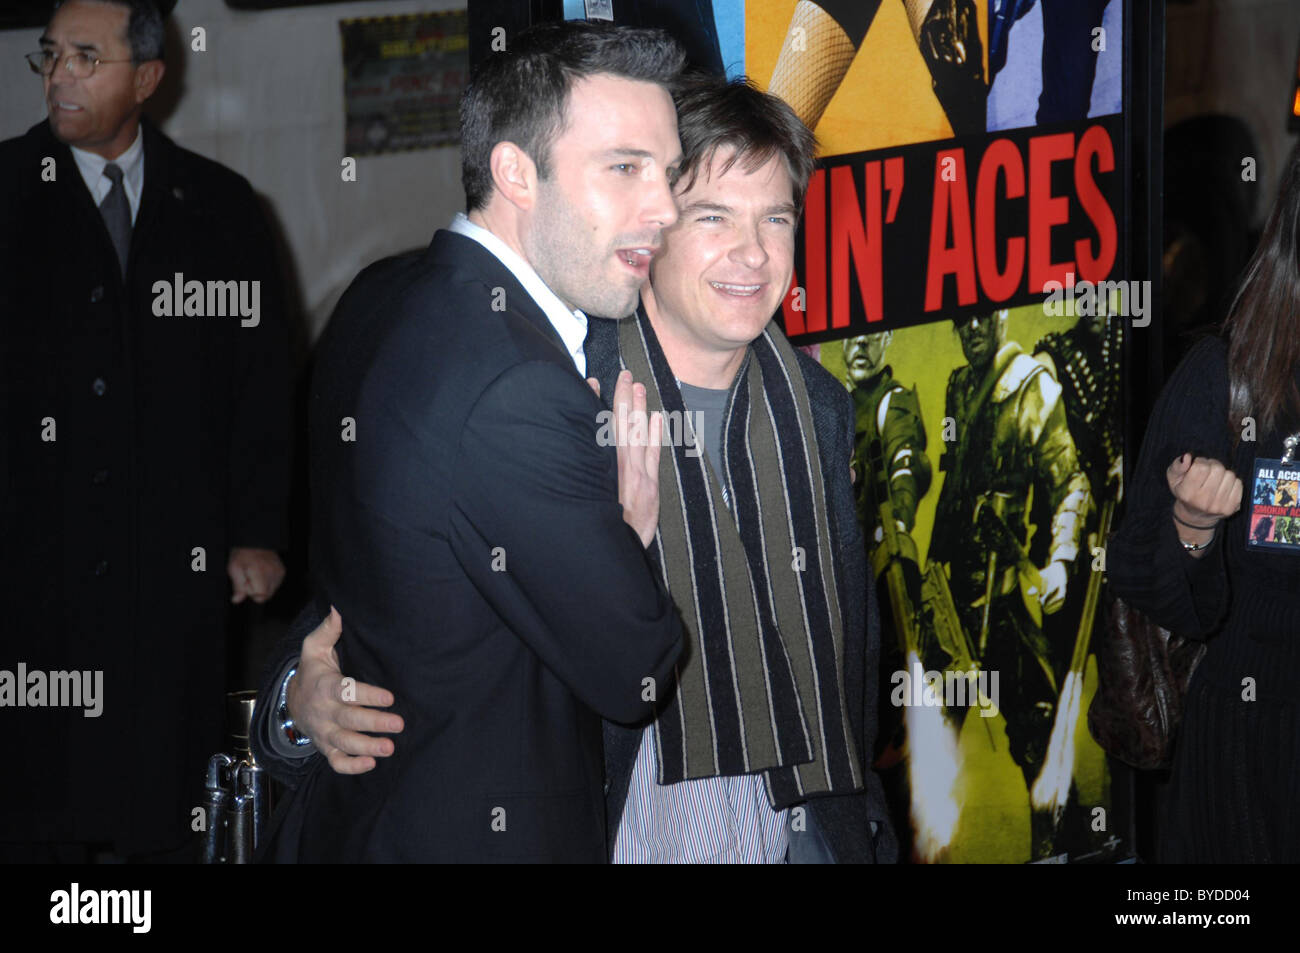 Ben Affleck and Jason Bateman World Premiere of 'Smokin' Aces' held at the Grauman's Chinese Theatre - Stock Image